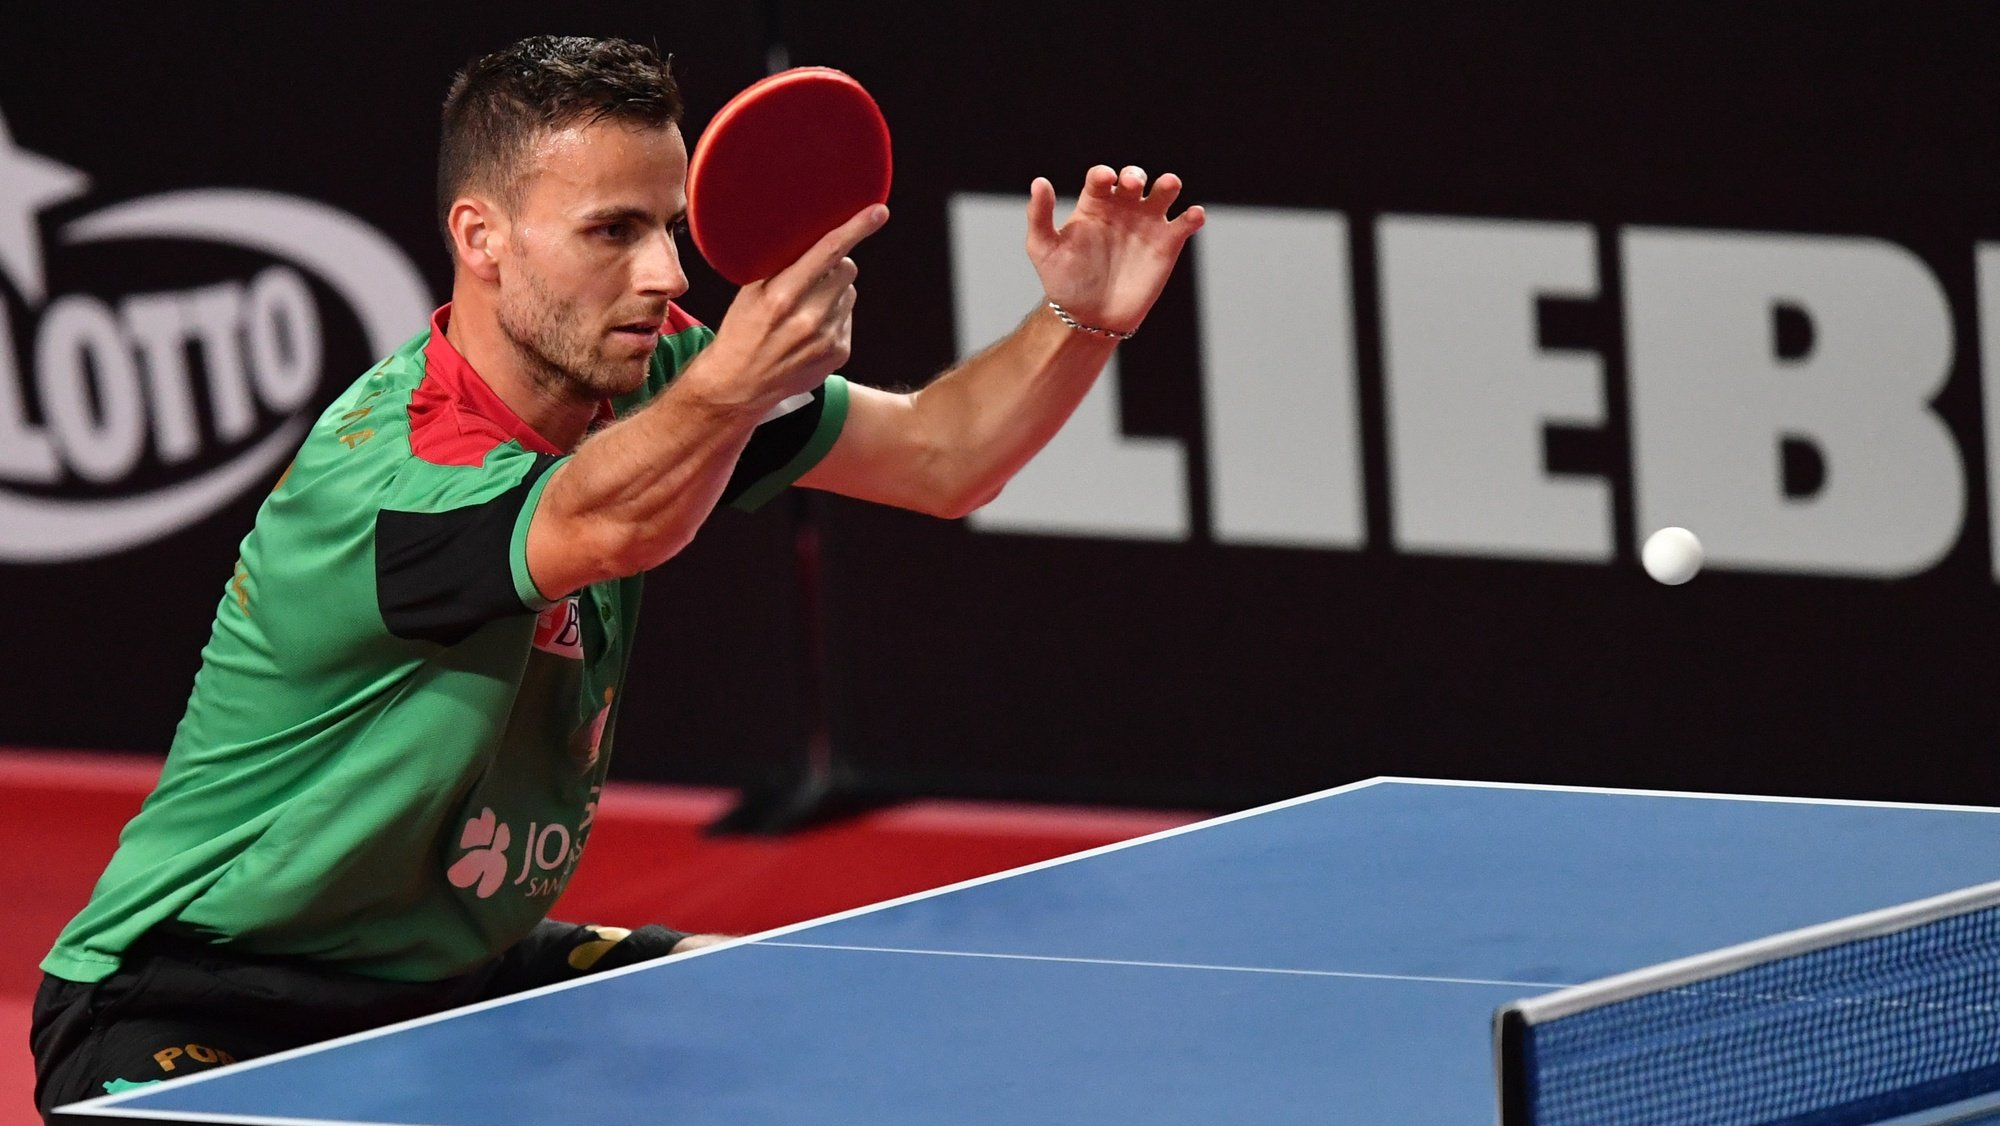 epa09301850 Tiago Apolonia of Portugal in action against Jon Persson of Sweden in the men's singles qualifiers during the ITTF European Table Tennis Championships 2020 in Warsaw, Poland, 25 June 2021.  EPA/Piotr Nowak POLAND OUT